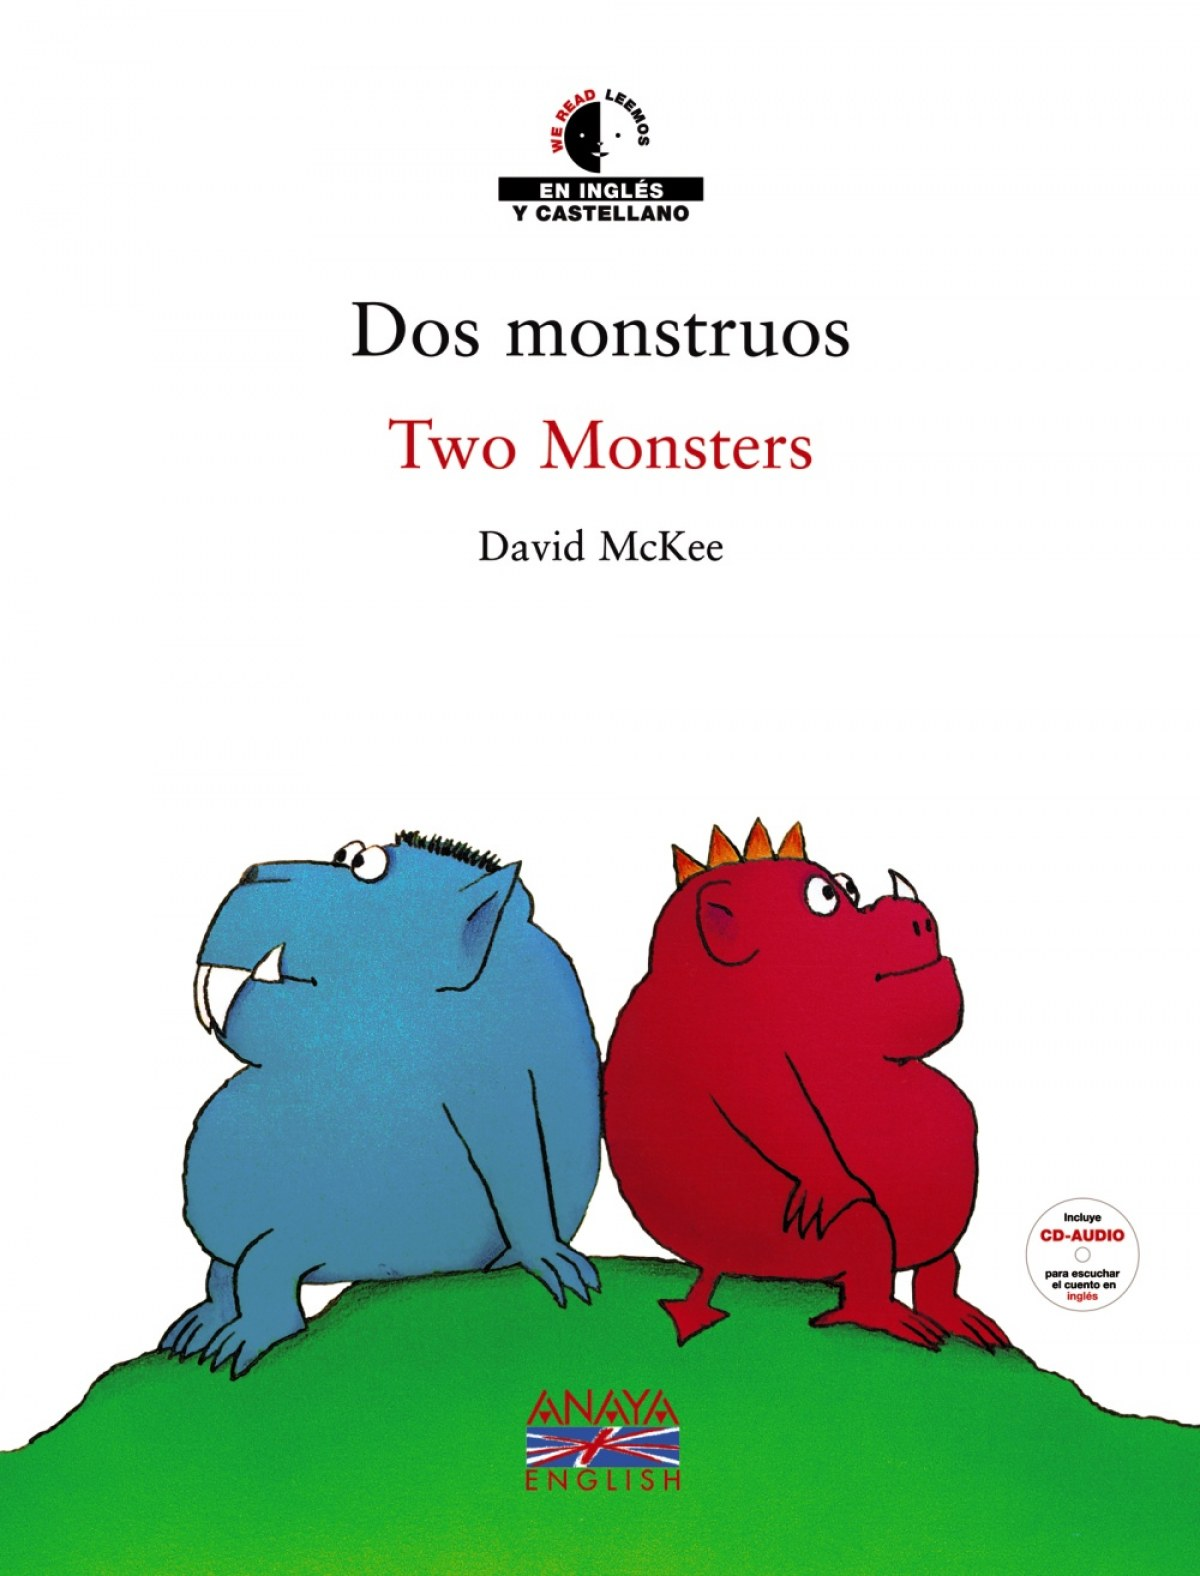 Dos monstruos / Two Monsters - McKee, David